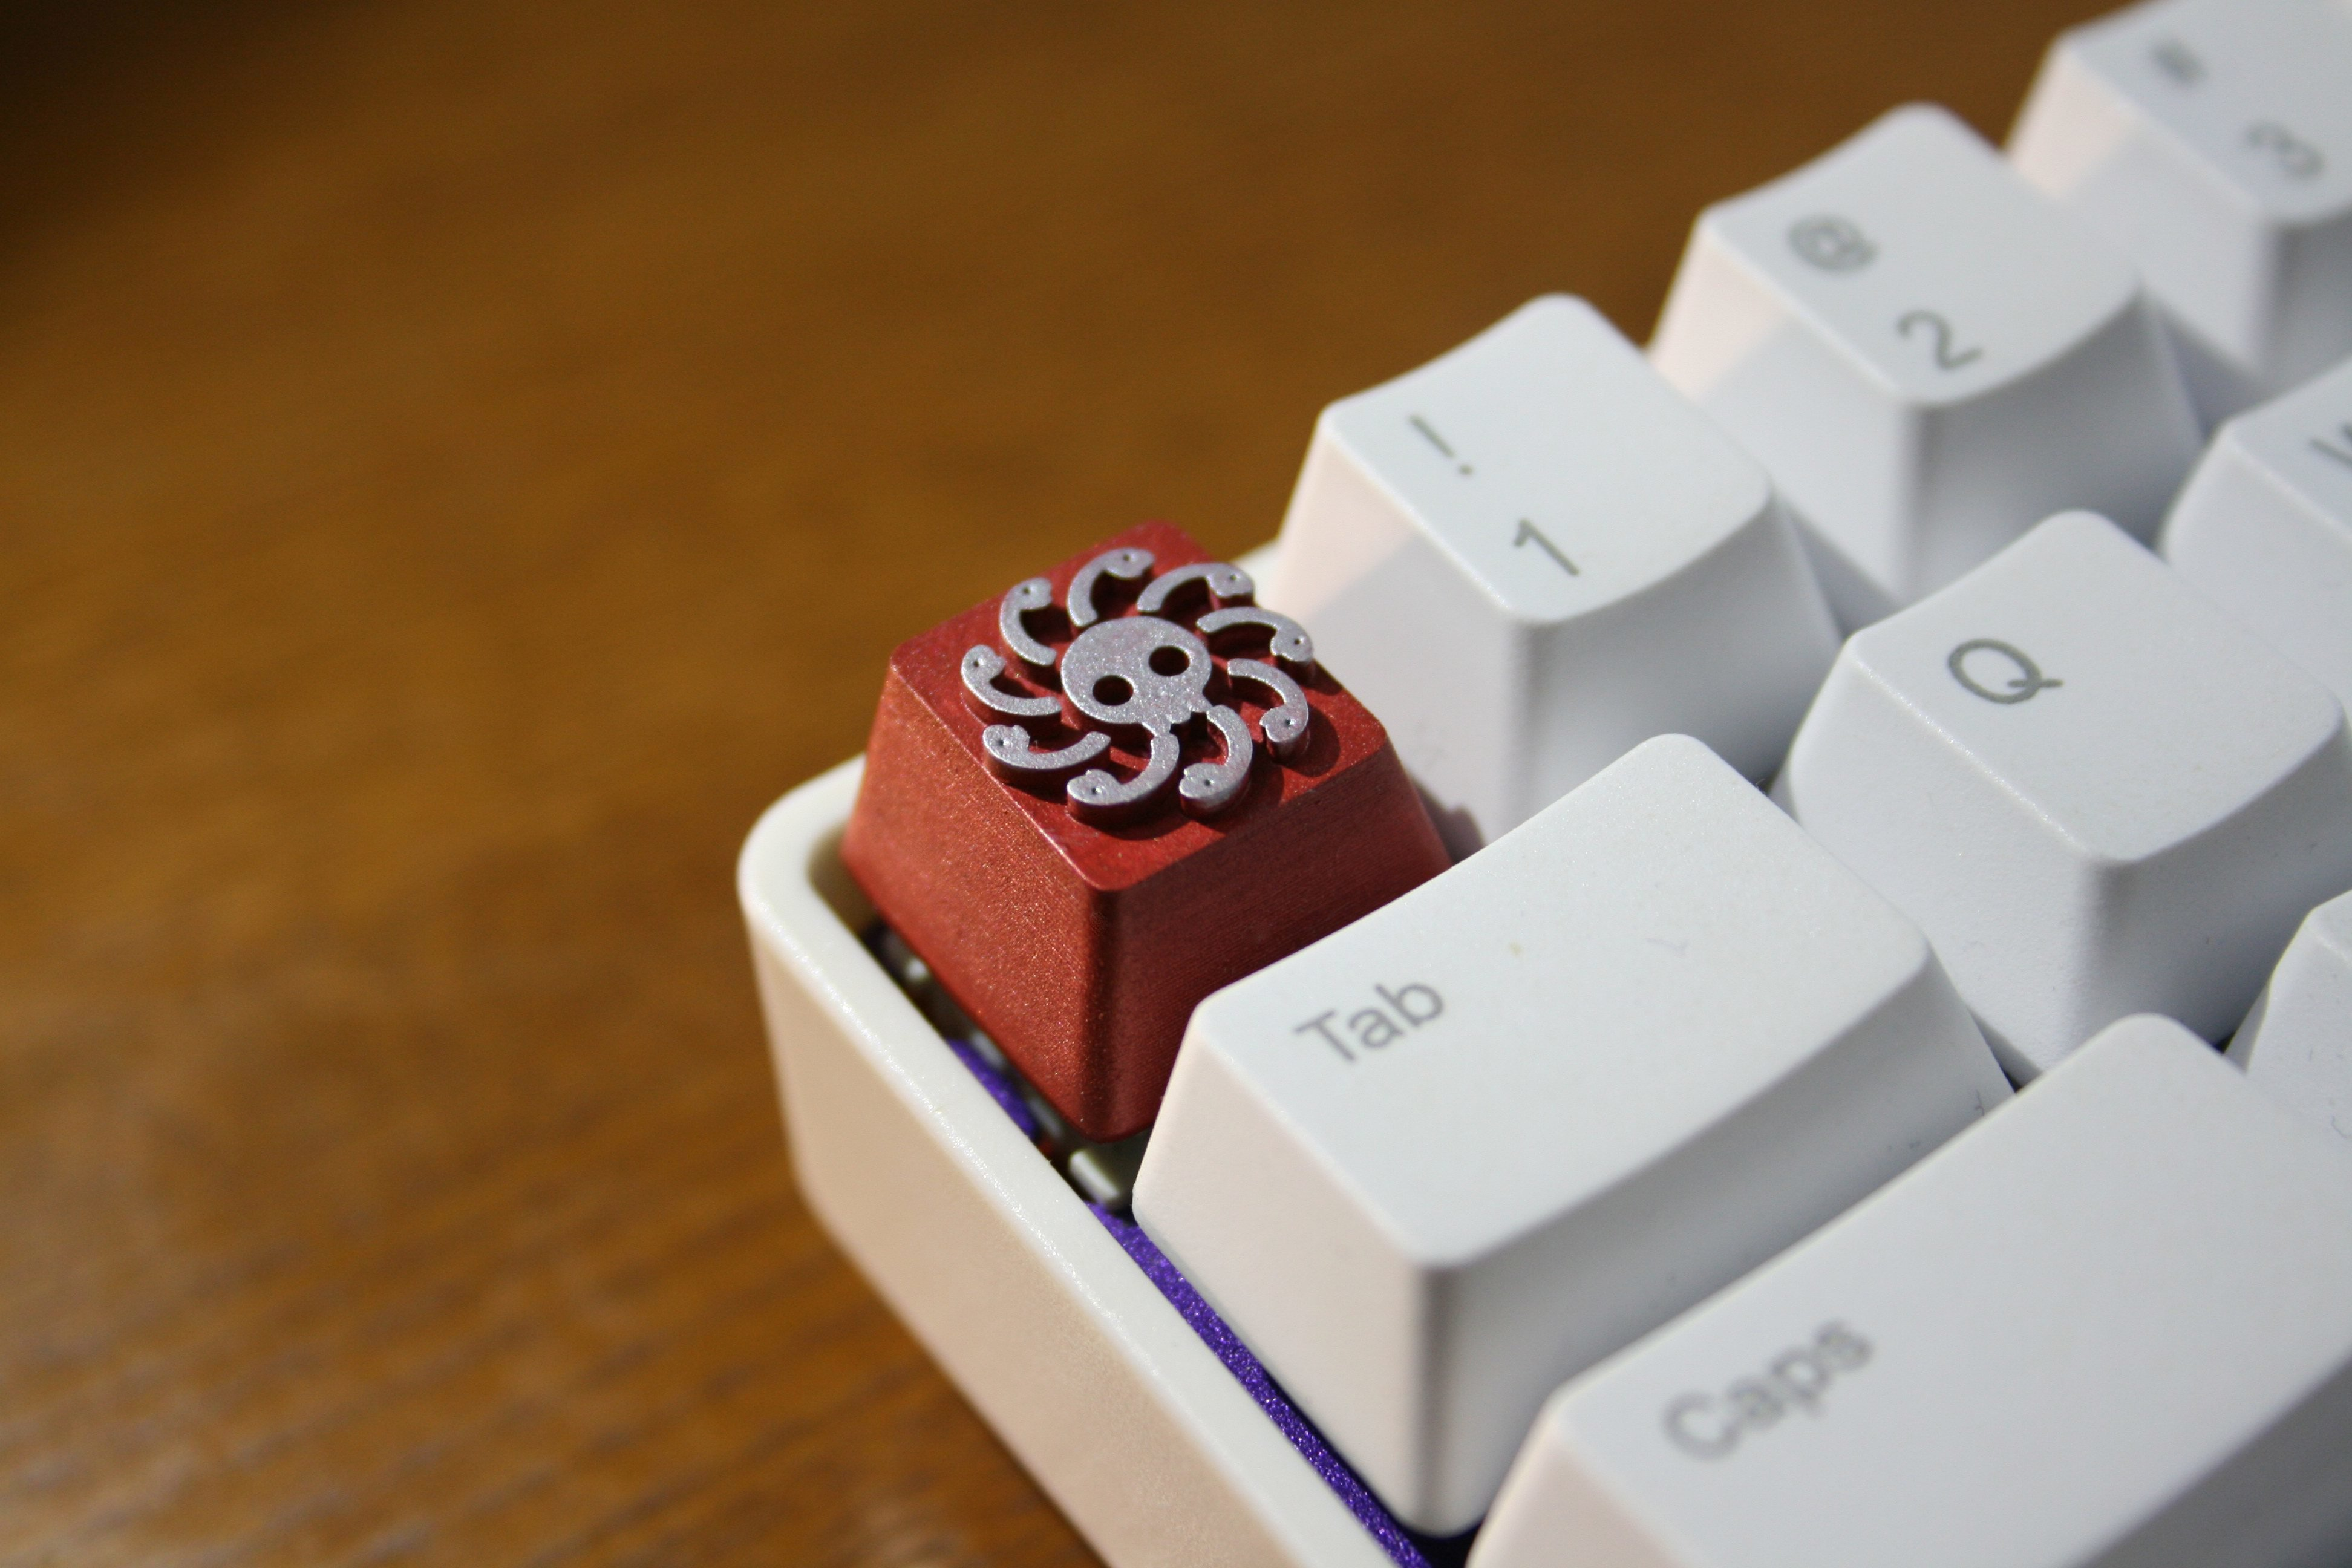 Color : 1pc Key Cap Keyboard keycaps 1pc Resin Hand-Made Customized Key Cap 3D Stereoscopic Mechanical Keyboard Keycap for ONE Piece Boa Hancock